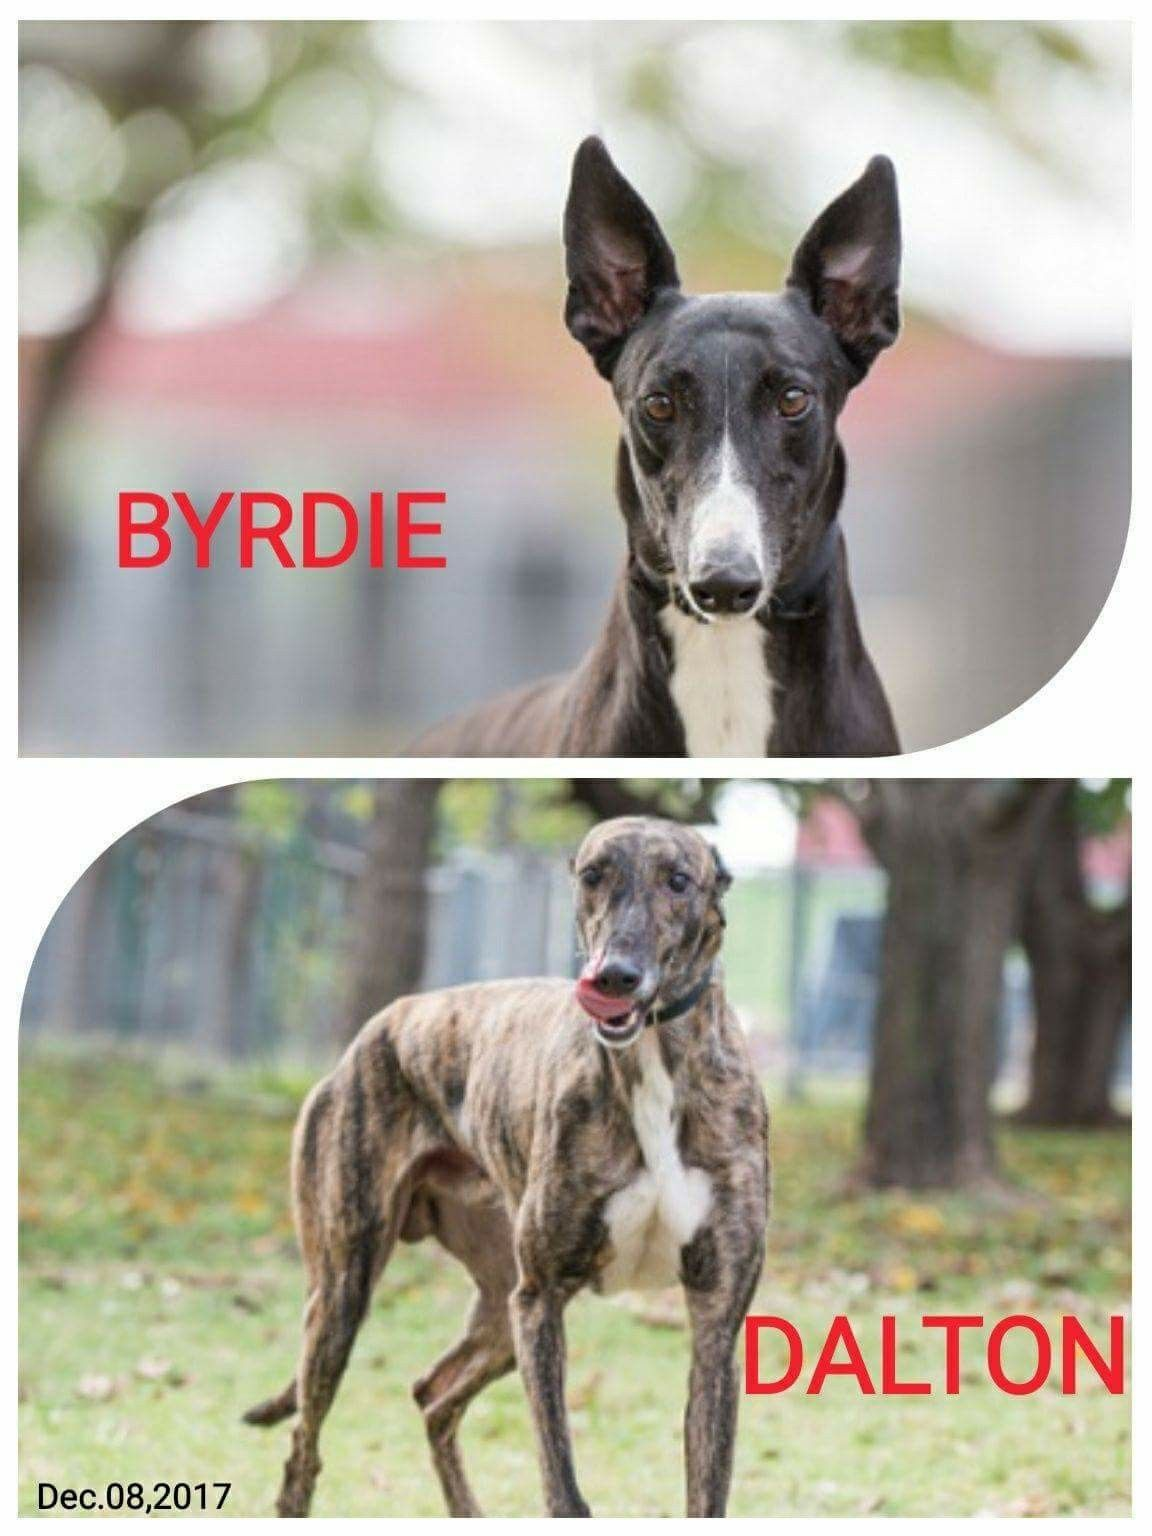 Byrdie 2 yrs old and dalton 4 yrs old are arrivals from